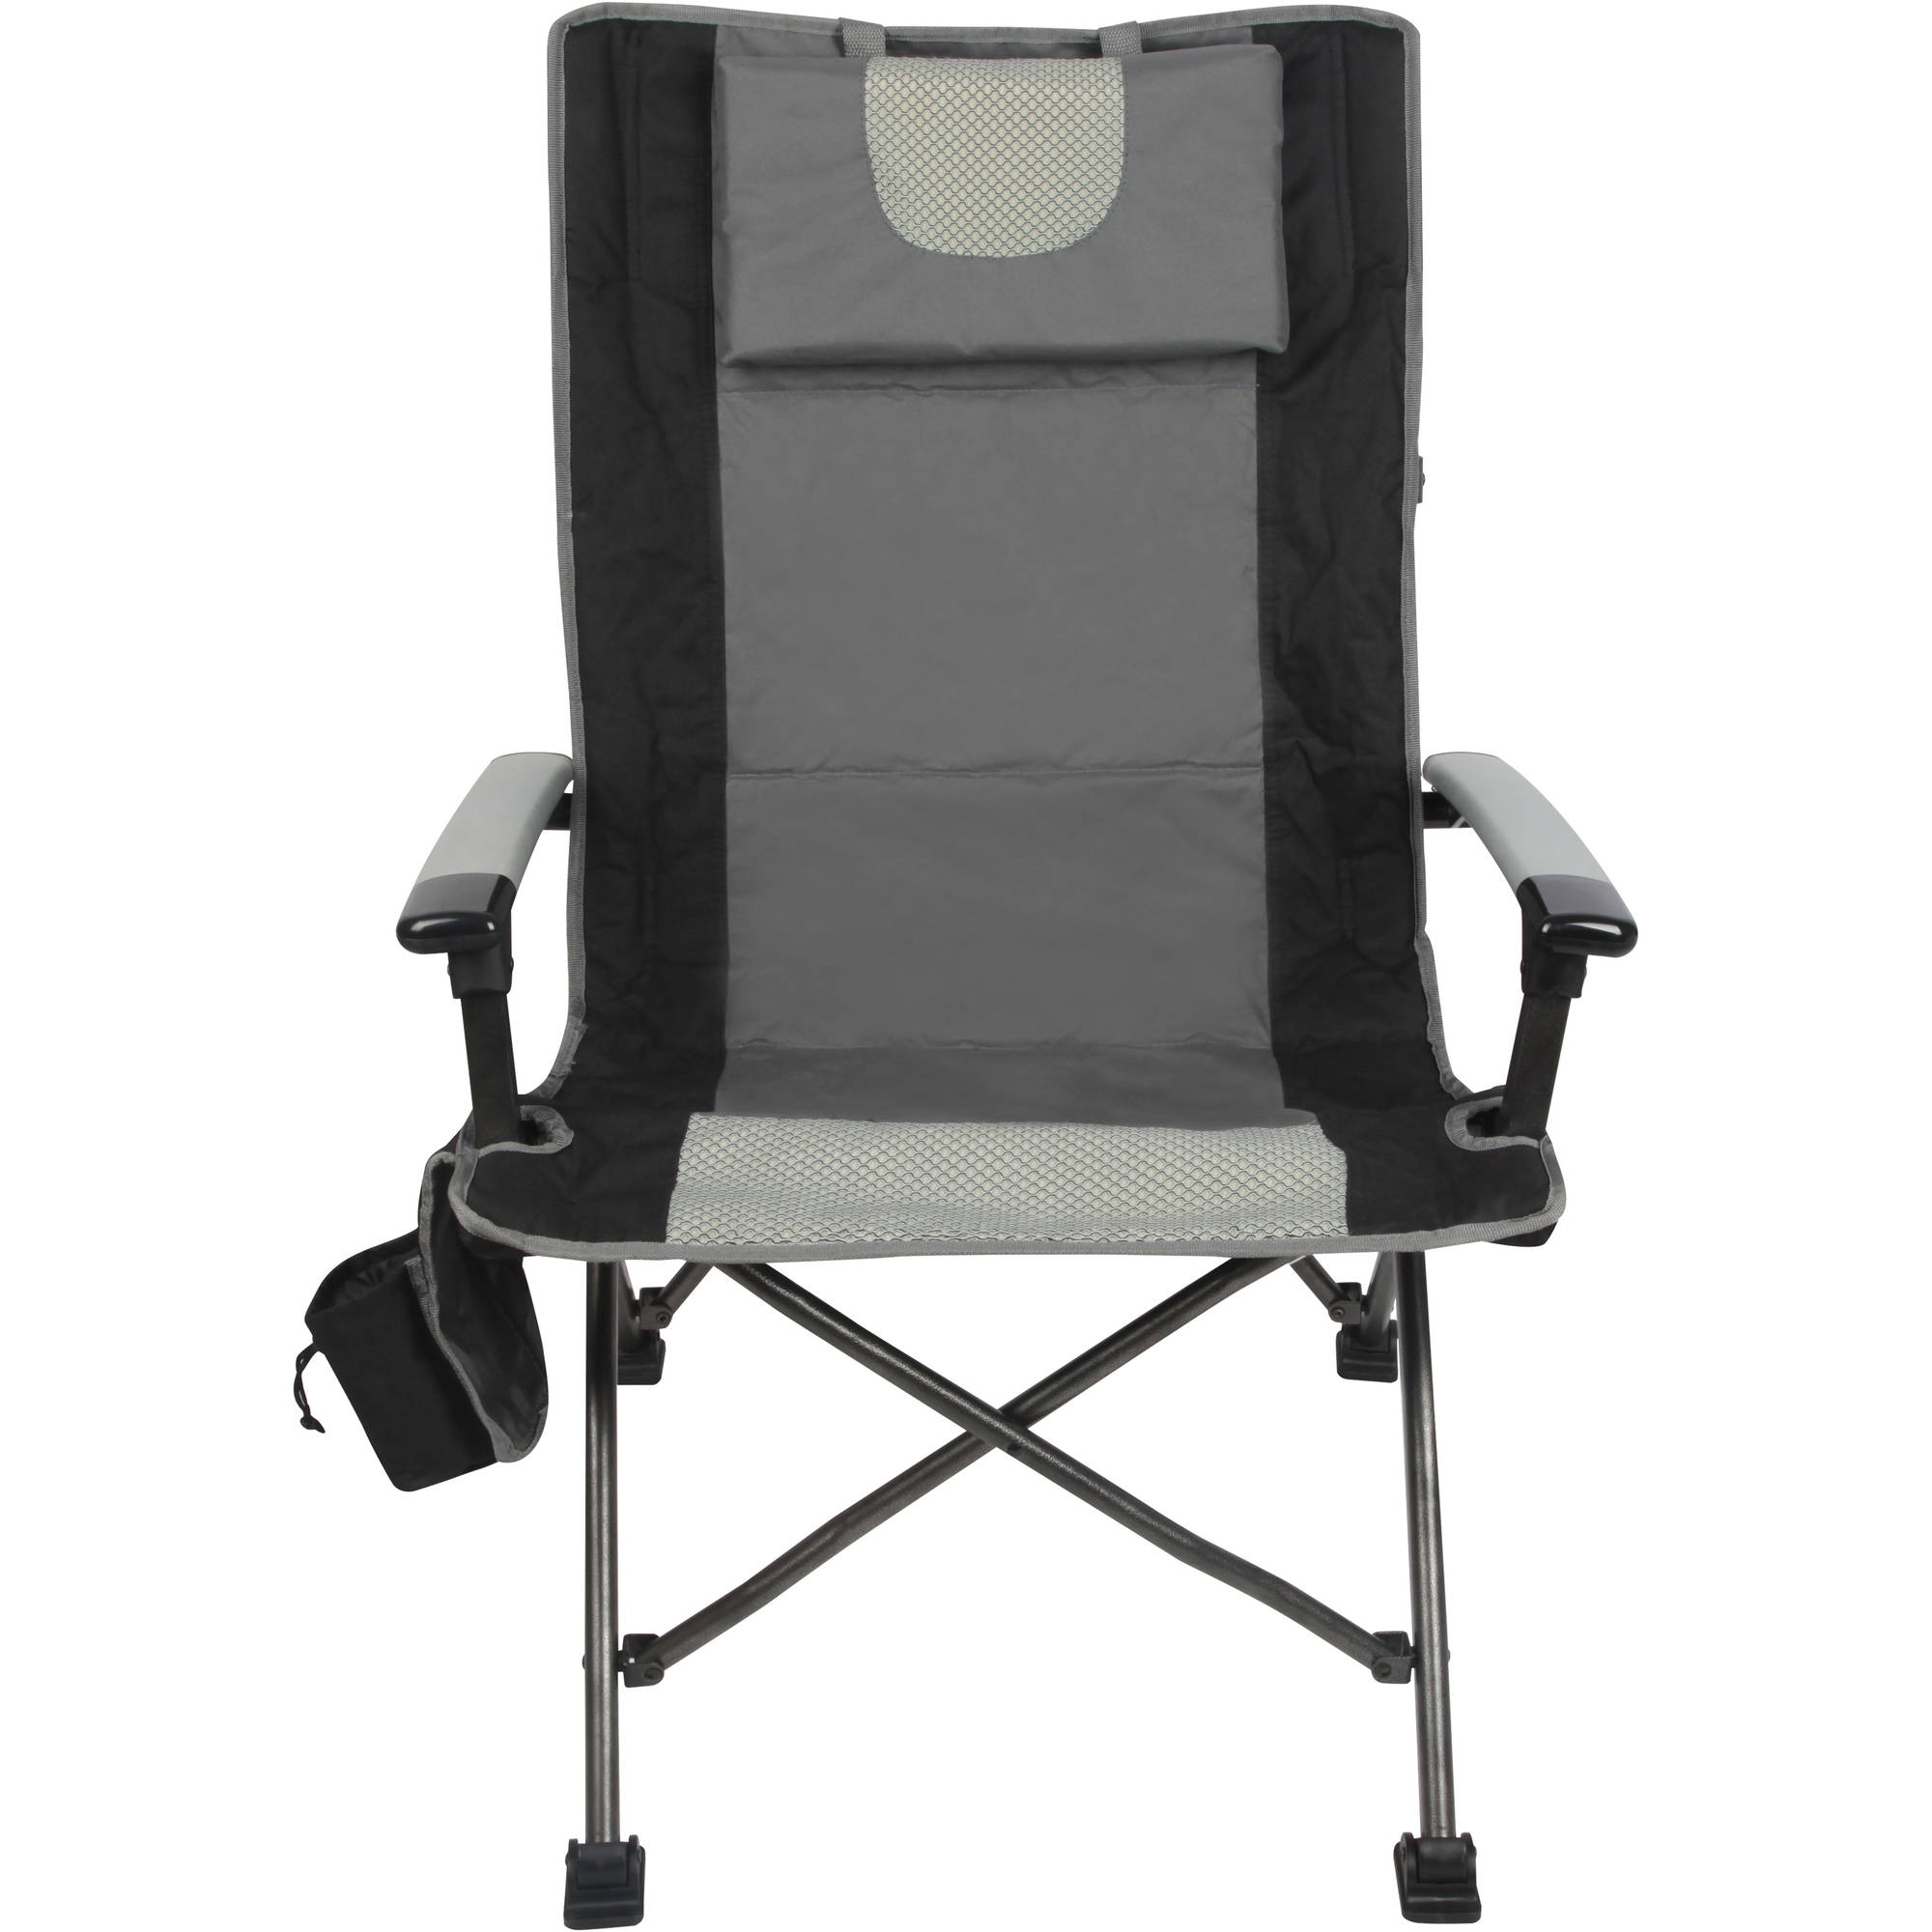 Trail Chair Outdoor High Back Folding Chair With Headrest Set Of 2